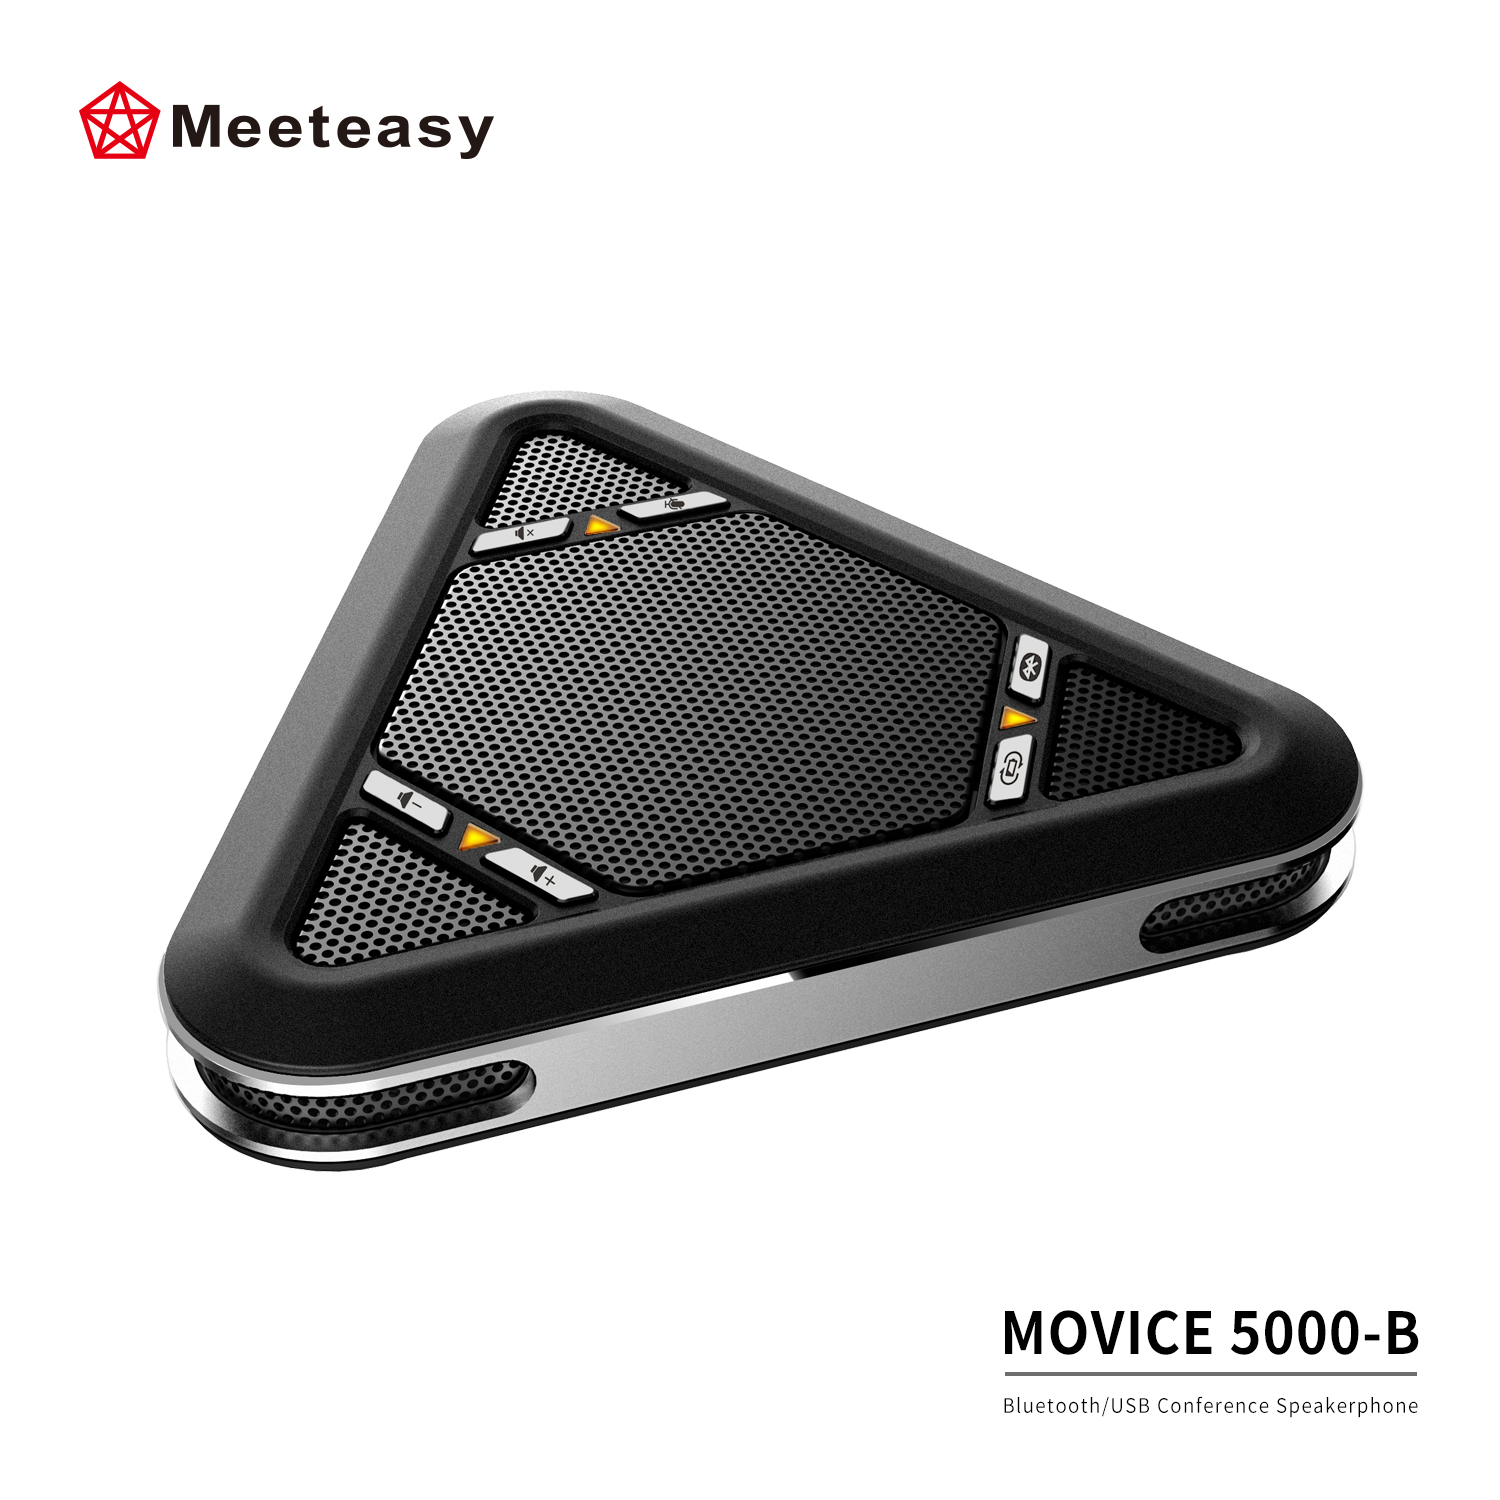 Meeteasy MVOICE 5000-B Portable Wireless BT USB conference speakerphones For business conferencing